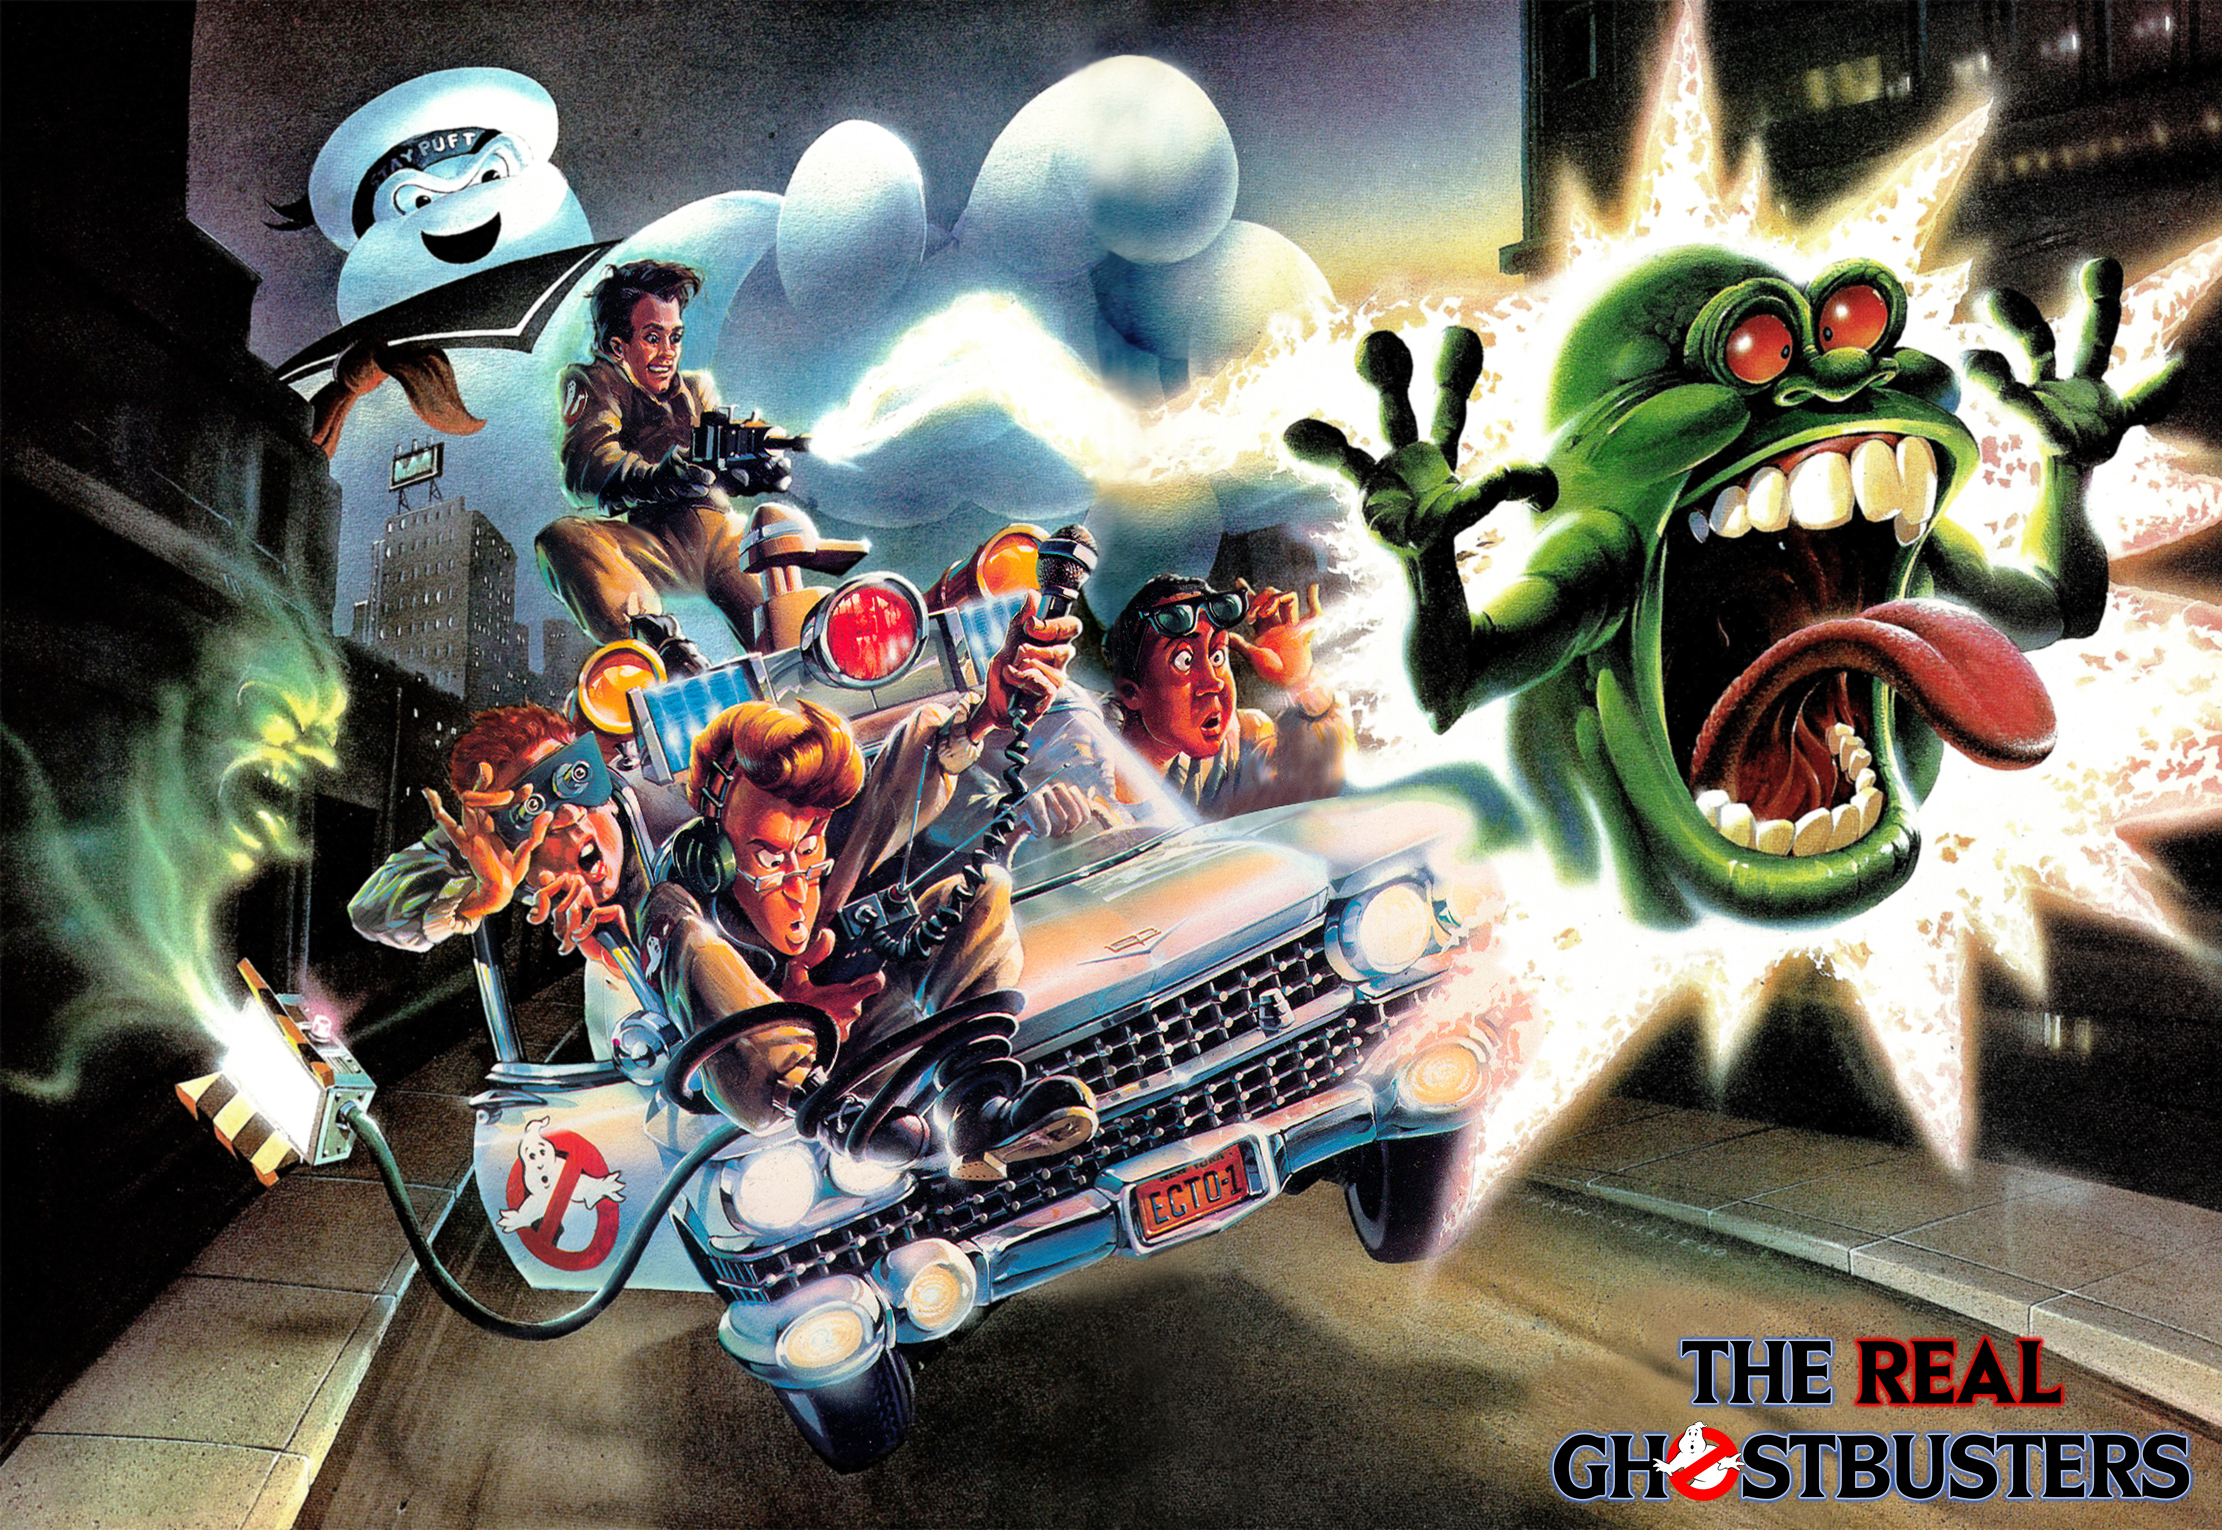 70 Ghostbusters HD Wallpapers | Backgrounds - Wallpaper Abyss